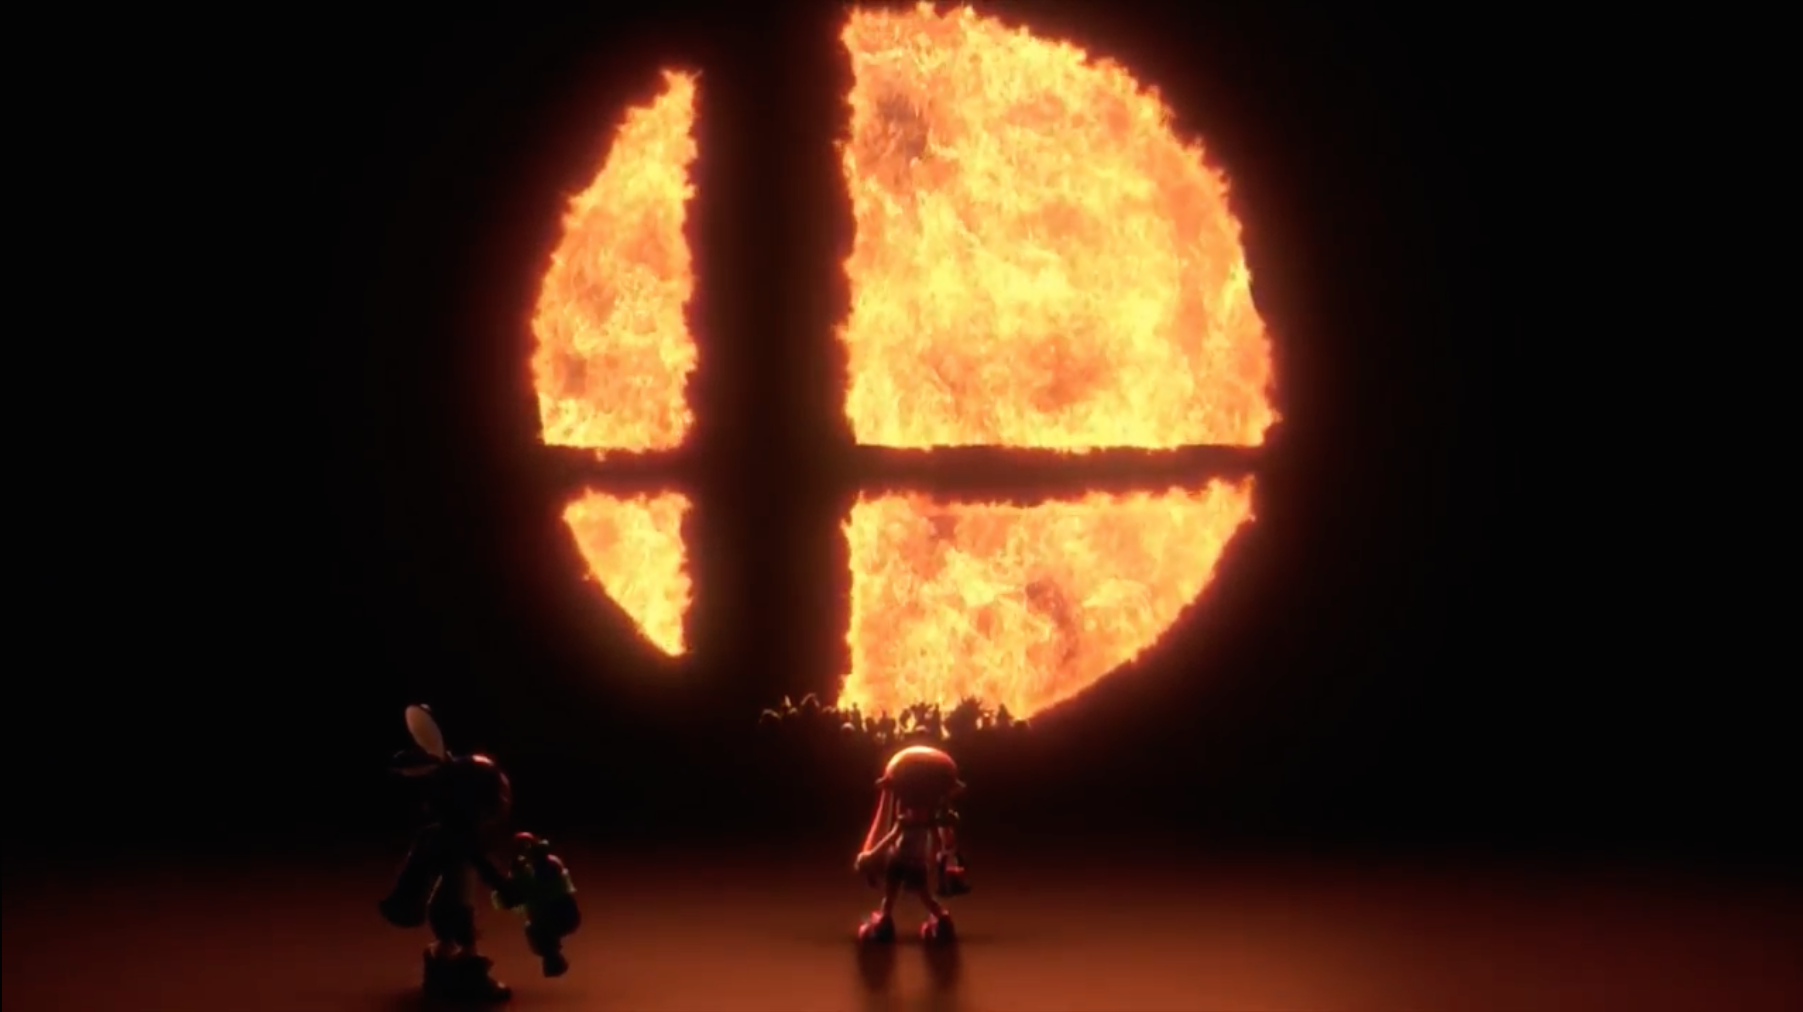 Super Smash Bros is finally coming to the Nintendo Switch this year